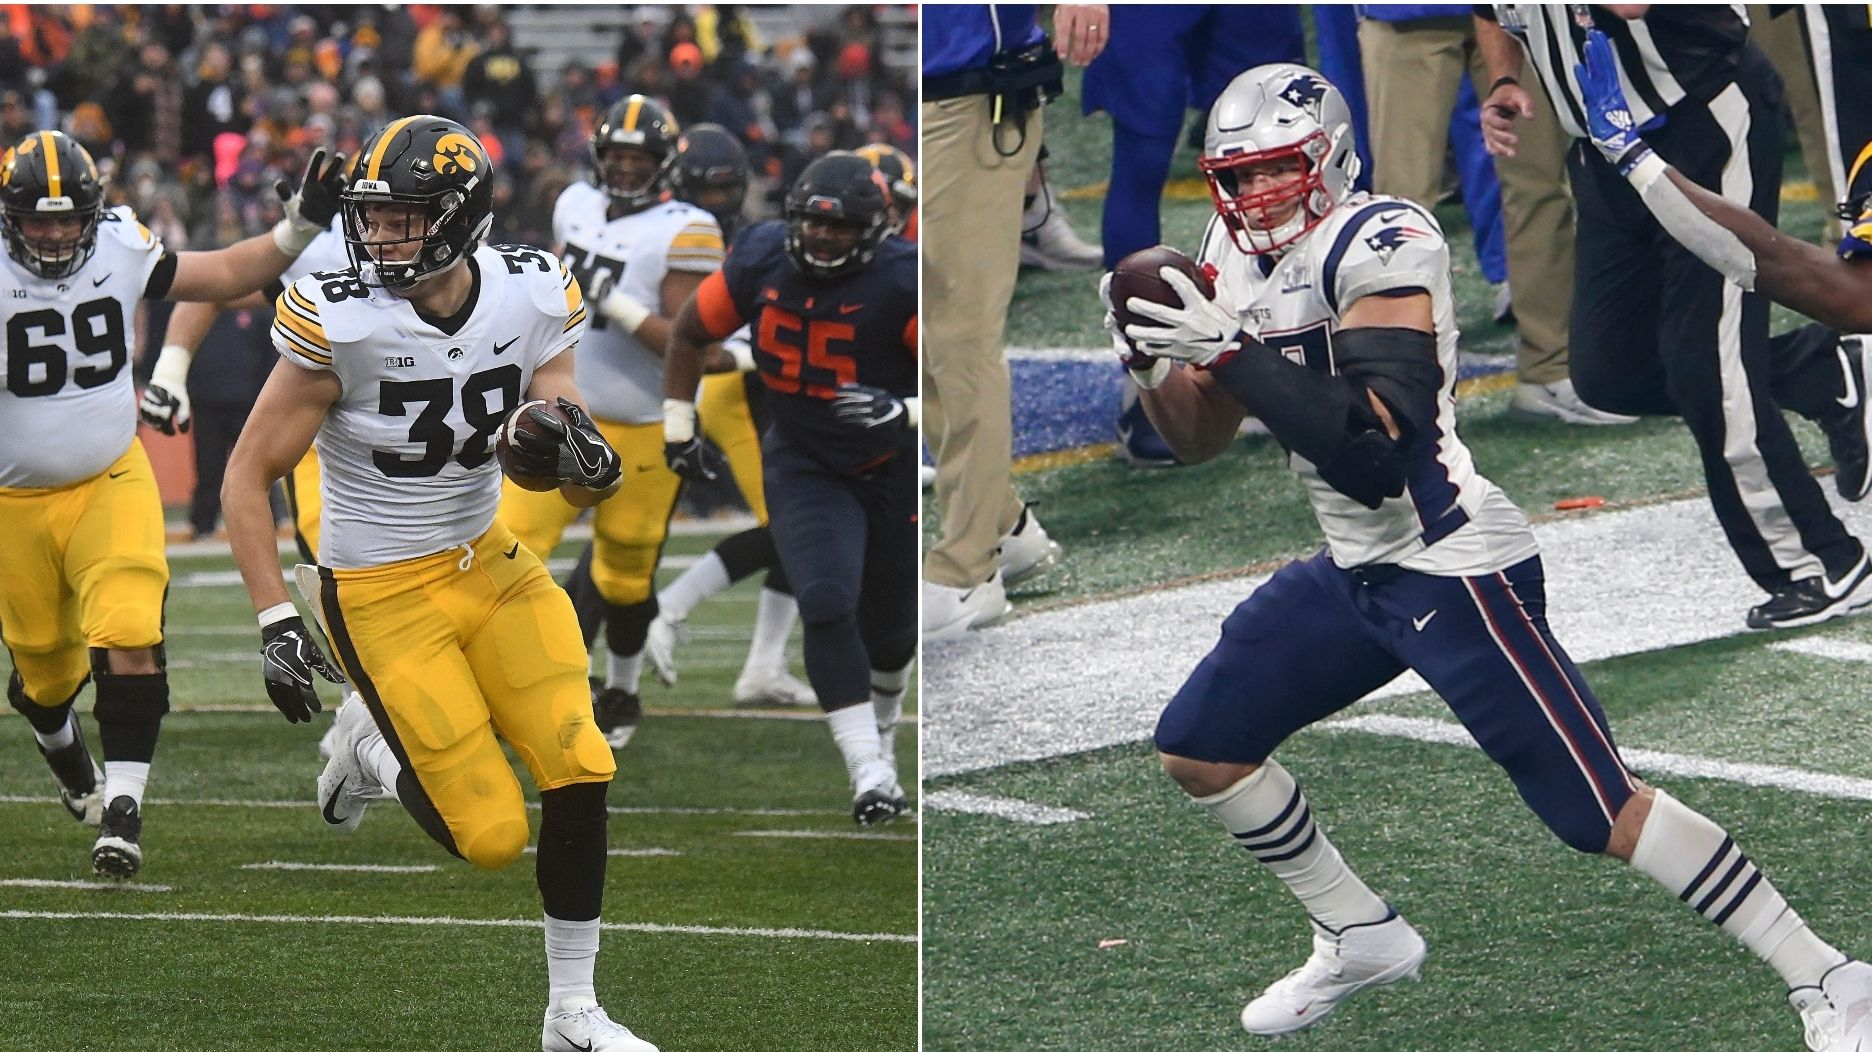 Is Hockenson the next Gronk?